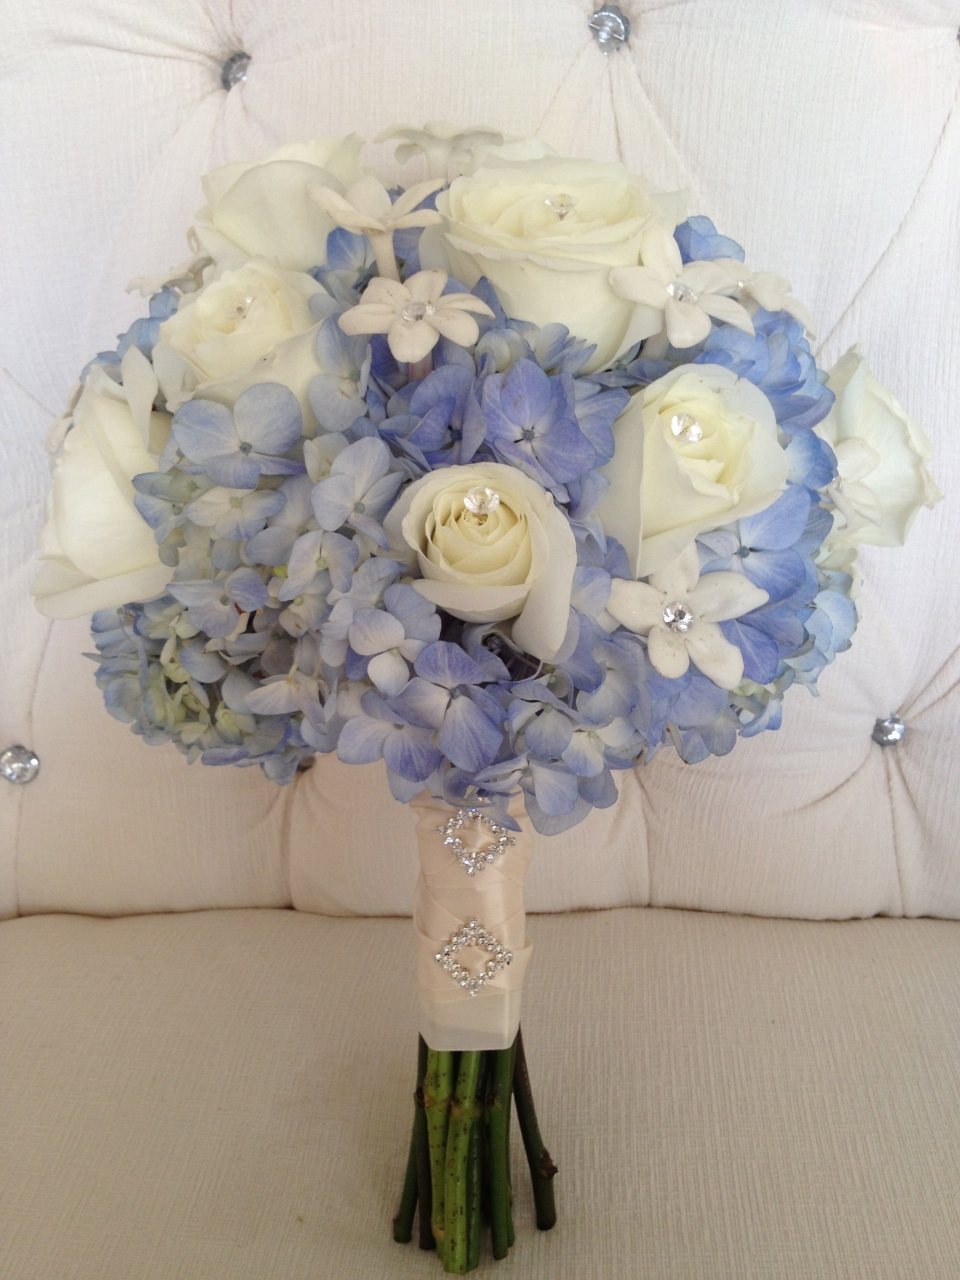 Bridal bouquet of blue hydrangea, white roses and stephanotis